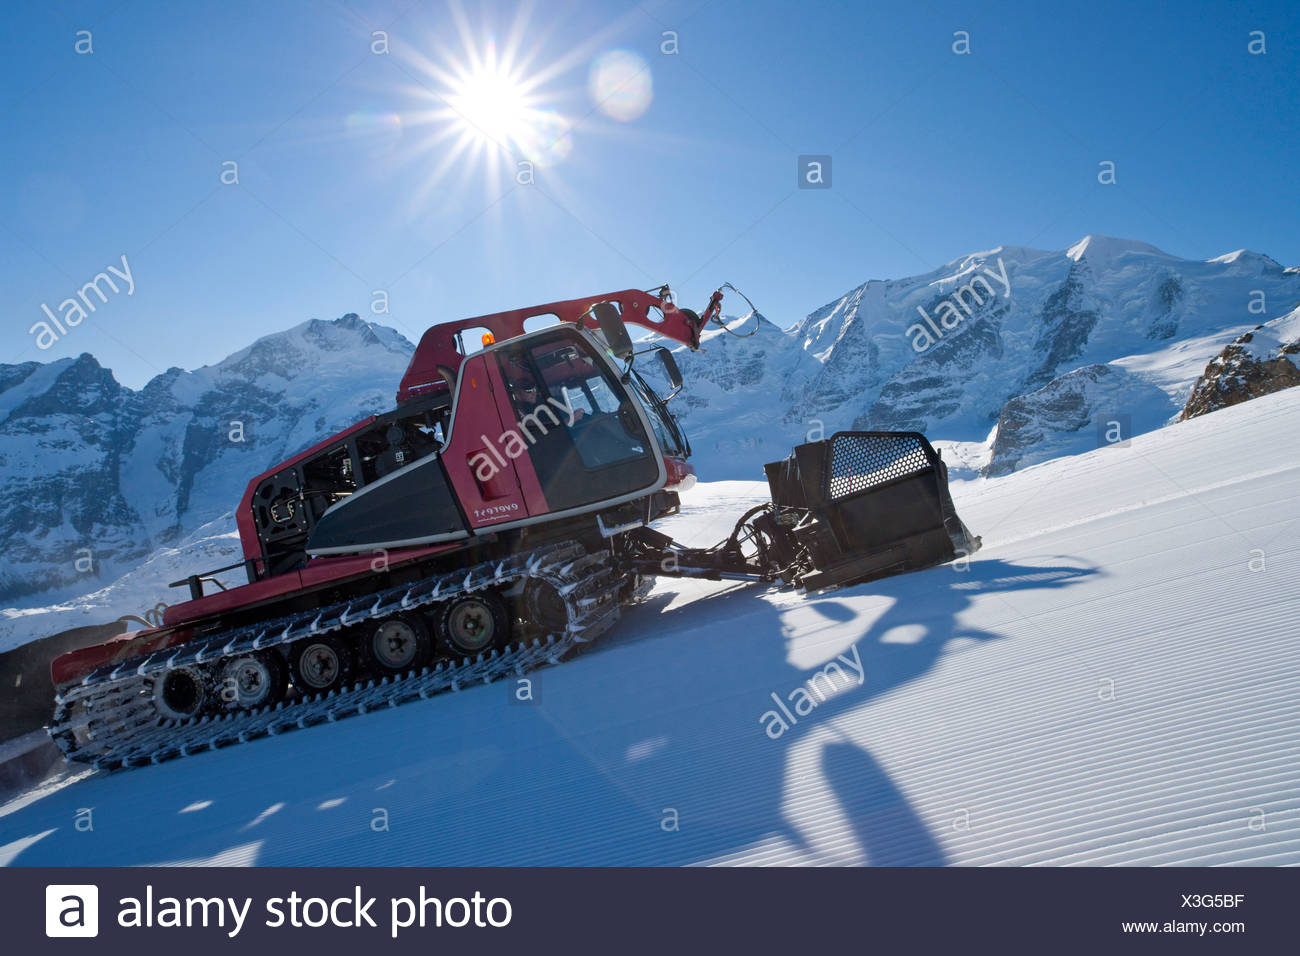 piste, vehicle, snow goomer, Diavolezza, view, Bernina, winter sports, canton, GR, Graubünden, Grisons, Engadin, Engadine, Obere - Stock Image